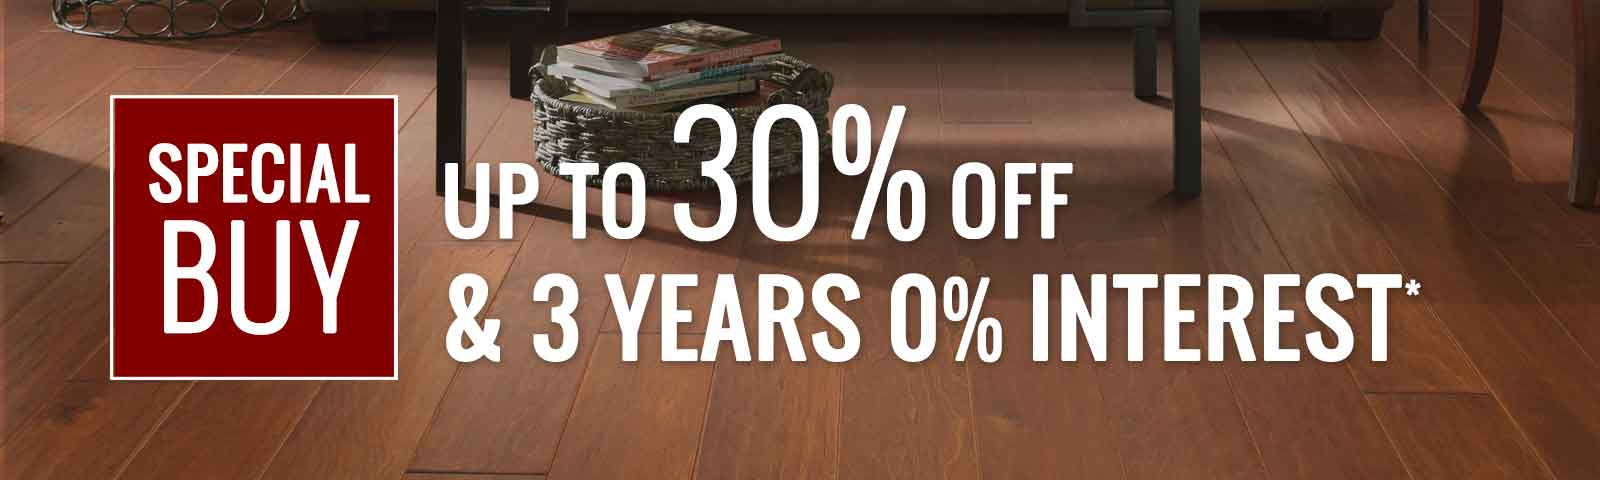 Save on Special Buy Flooring products form Molyneaux Pittsburgh